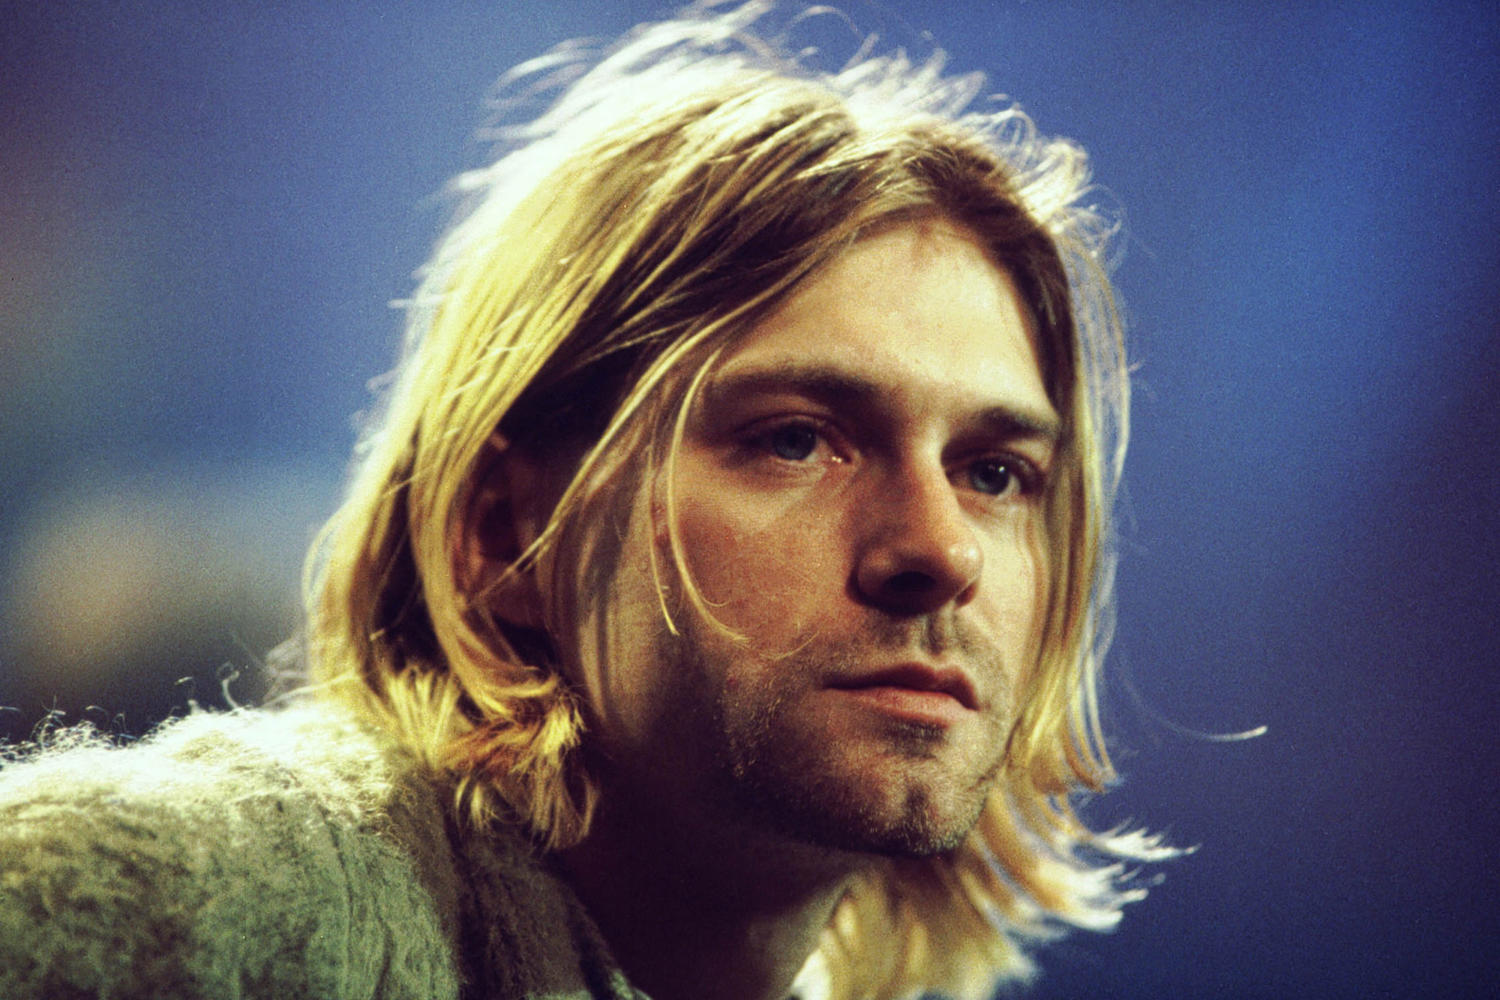 Audio of Kurt Cobain covering The Beatles' 'And I Love Her' surfaces online